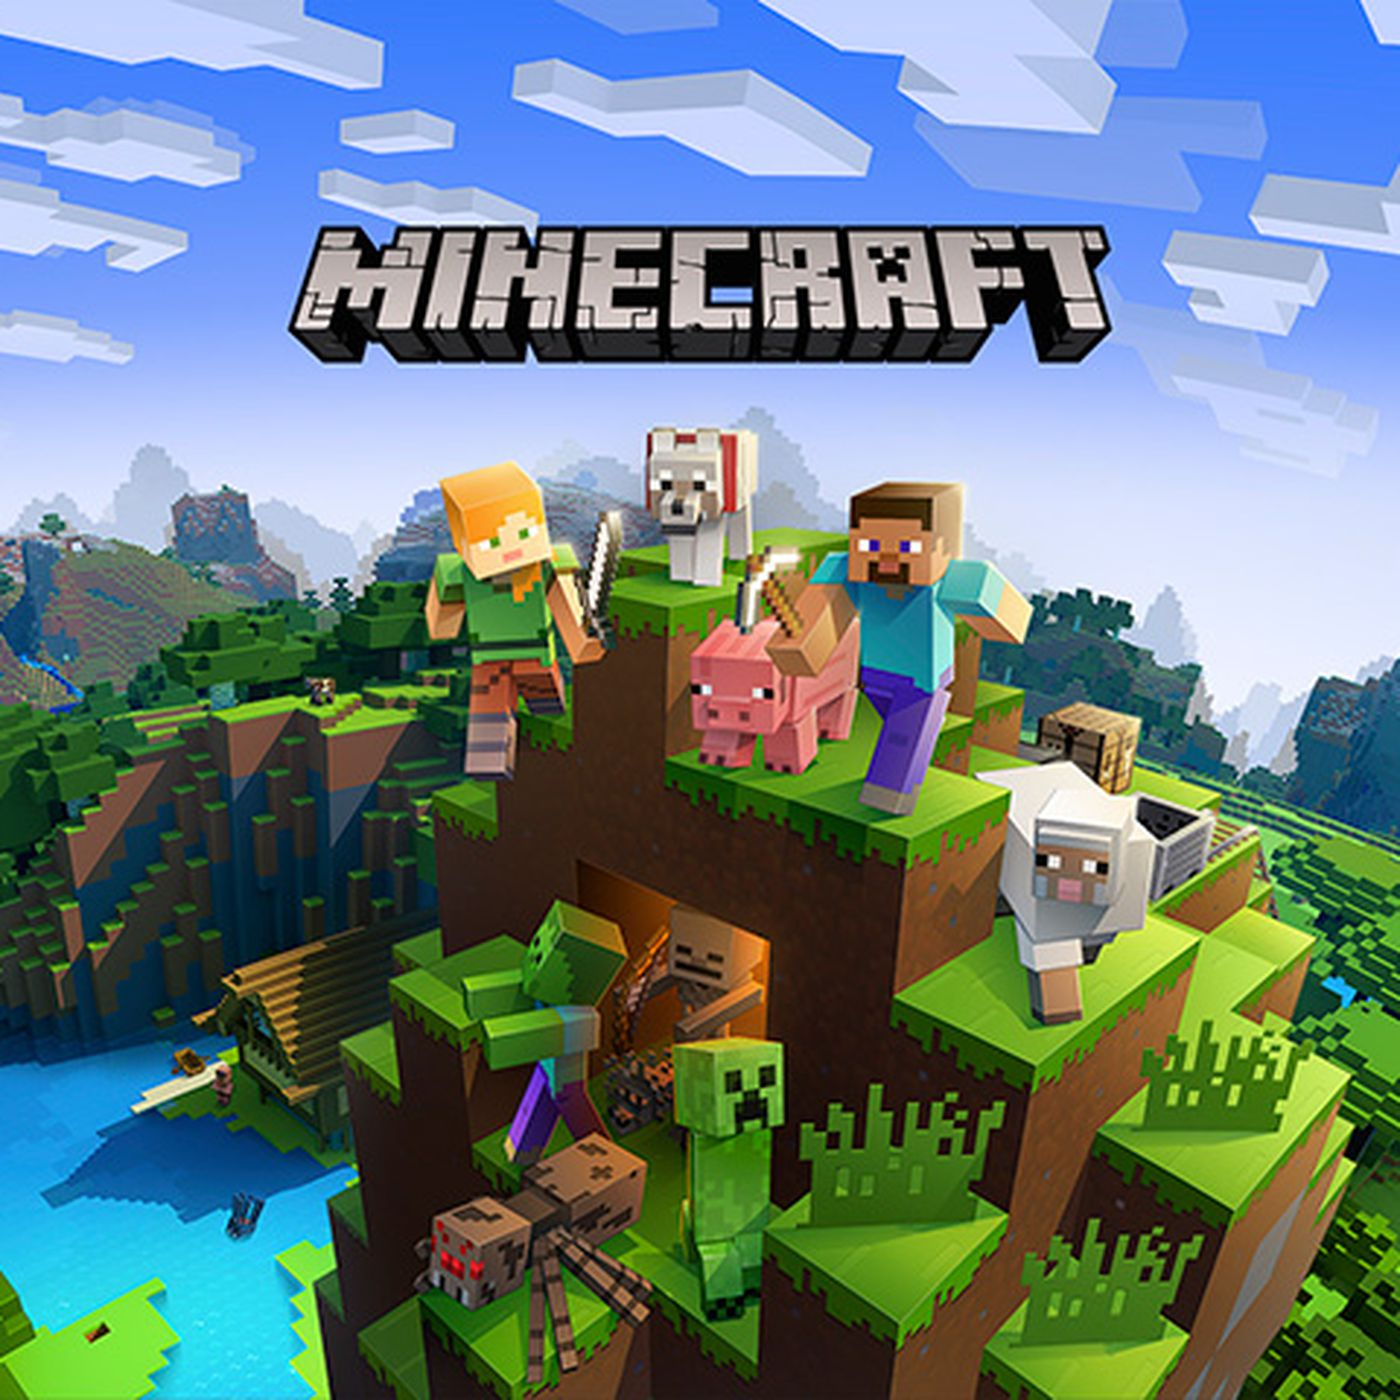 Minecraft for the Switch is getting cross-play with PC, Xbox One